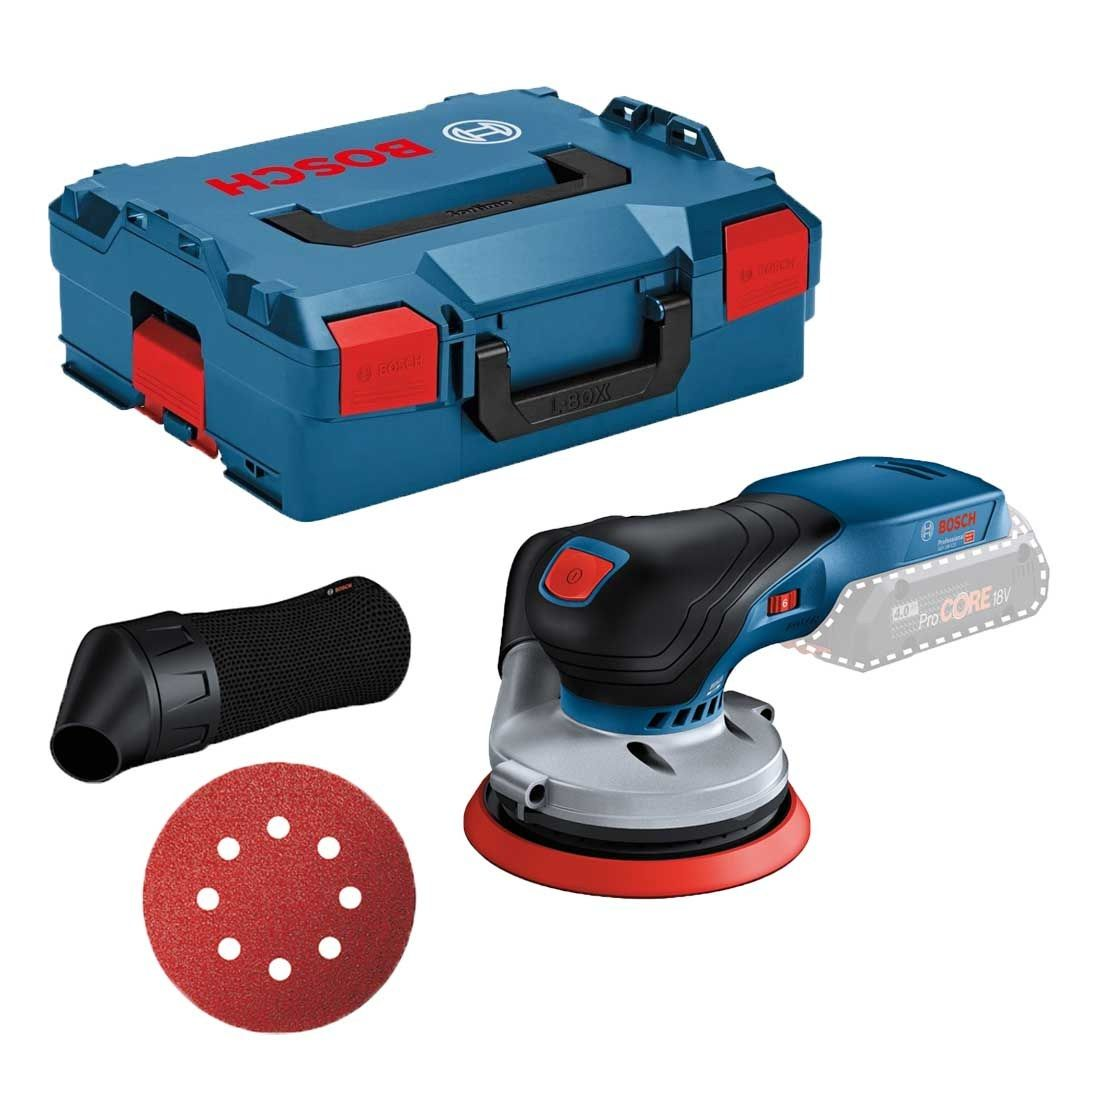 Bosch GEX 18V-125 Professional Cordless Random Orbit Sander (Body Only) 0601372200 | Optimal control for sanding larger surfaces | toolforce.ie